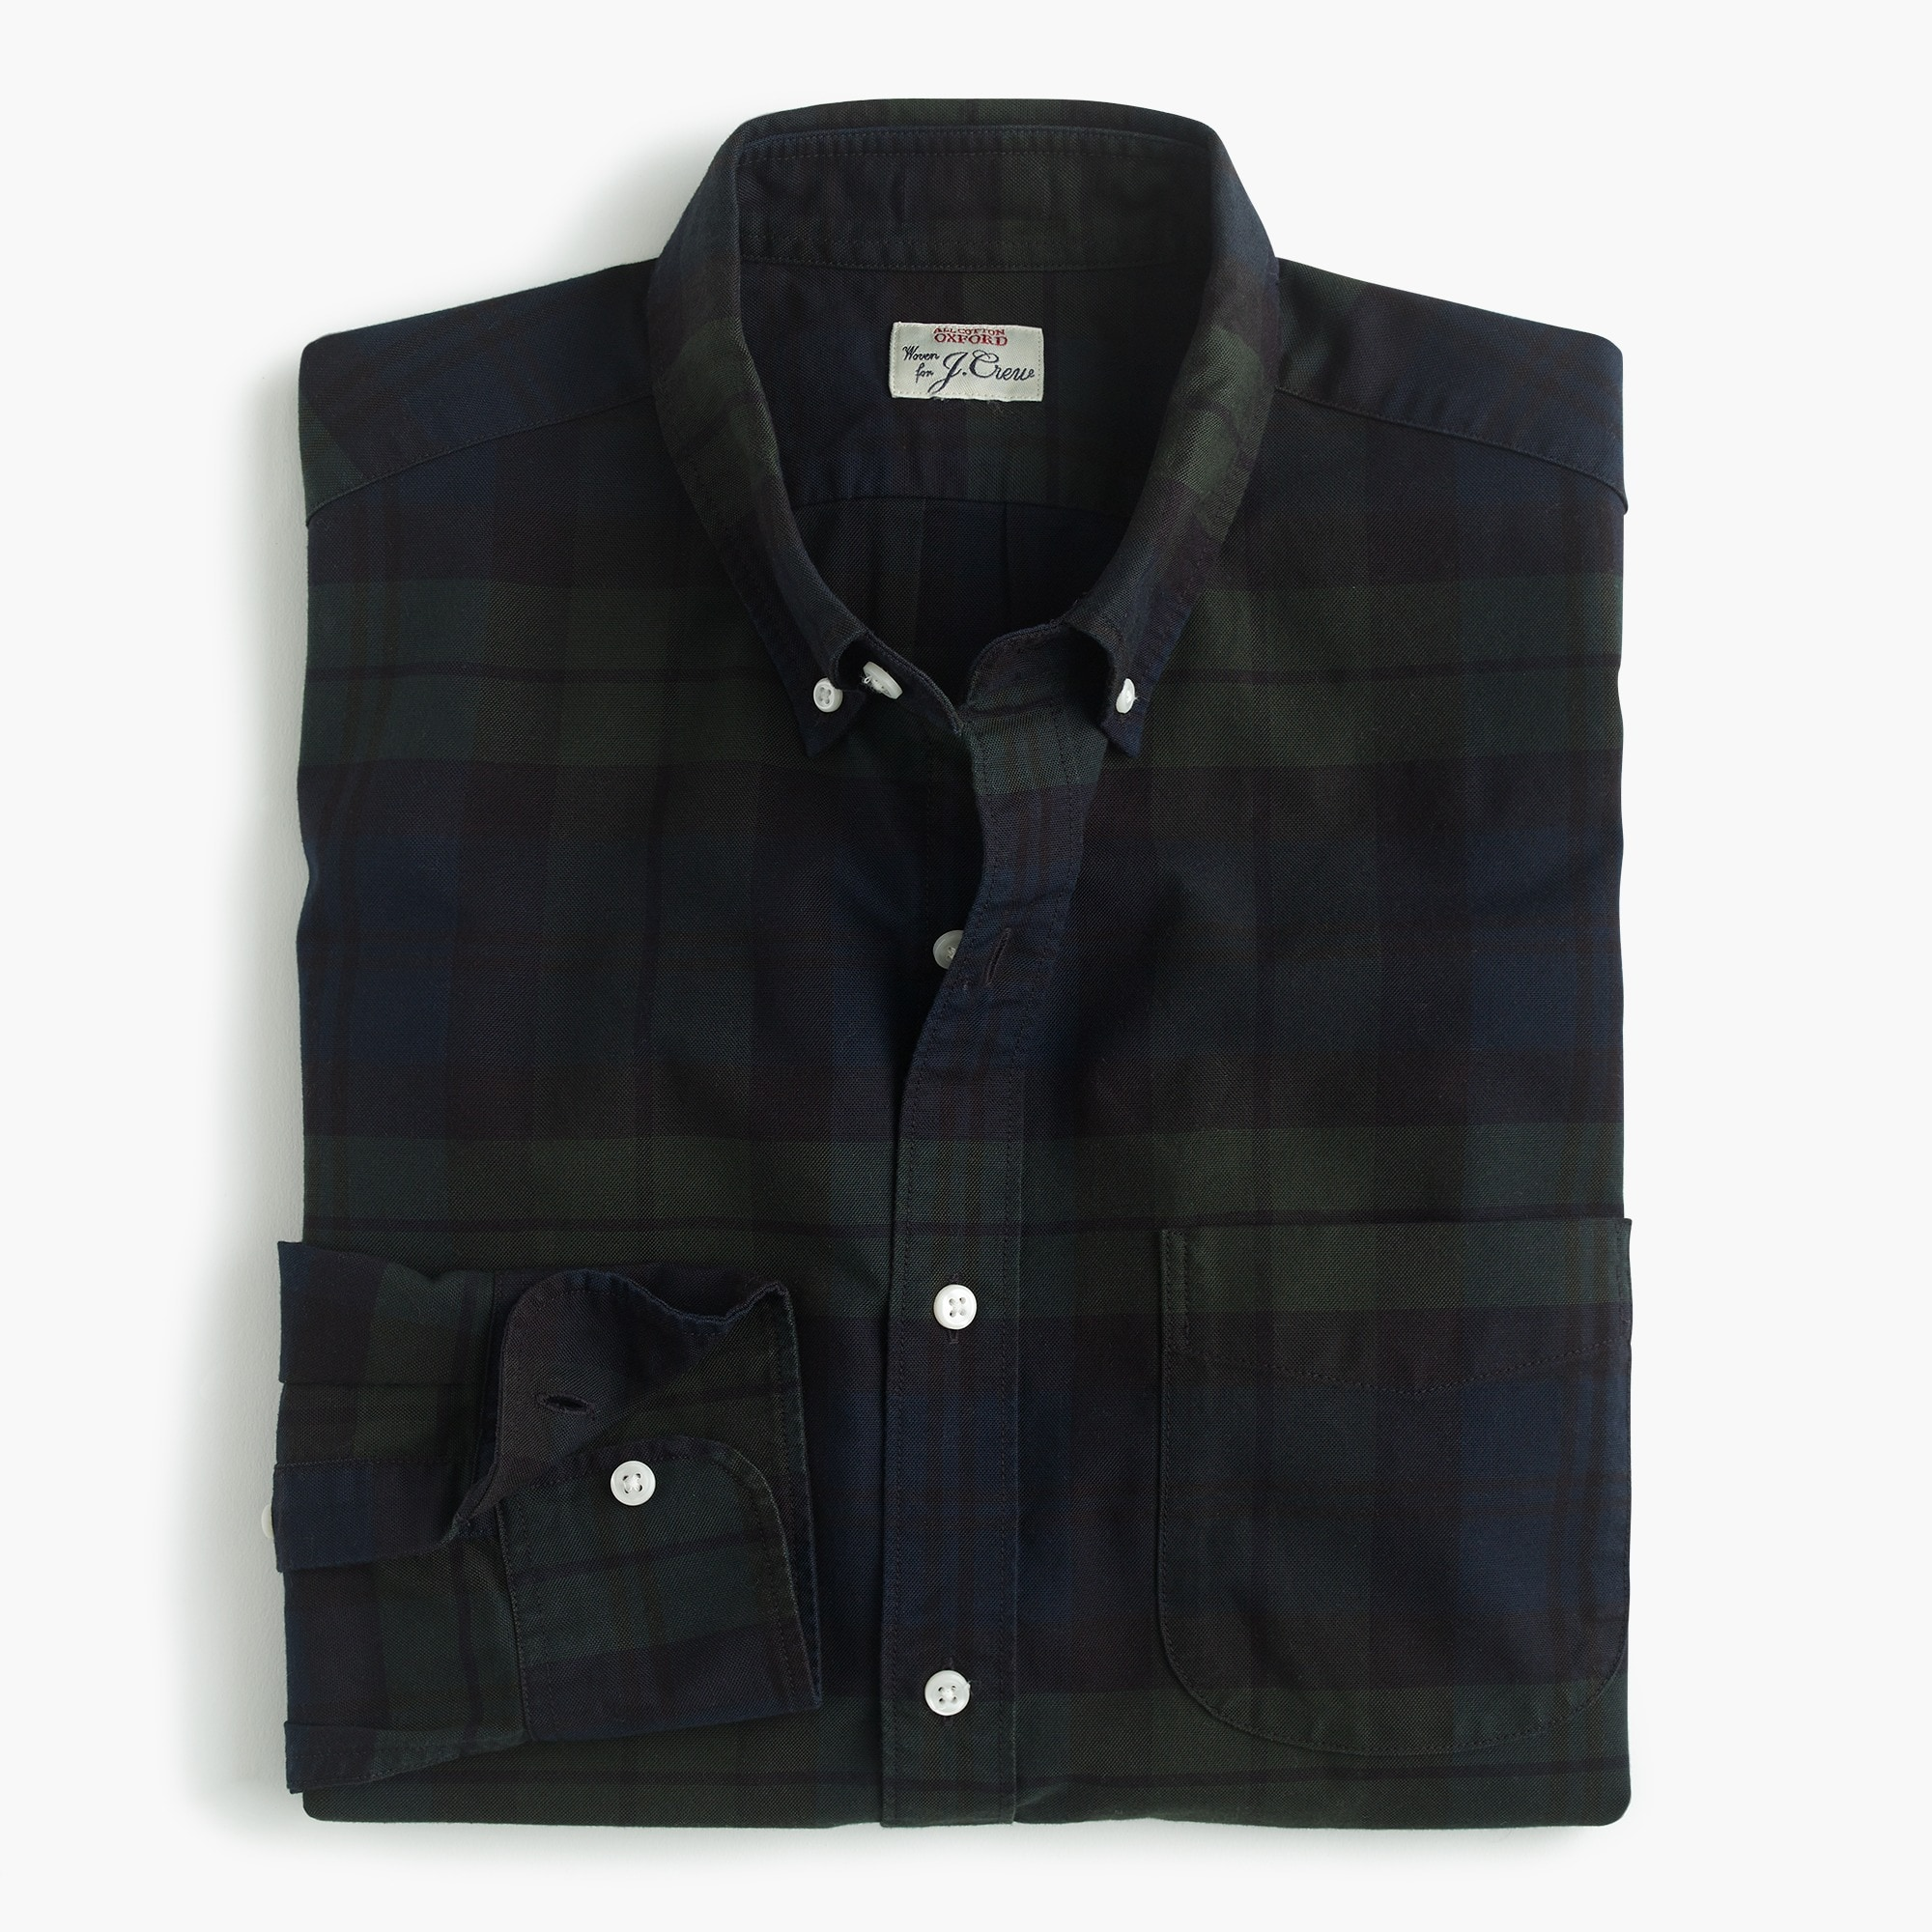 mens American Pima cotton oxford shirt with mechanical stretch in Black Watch tartan